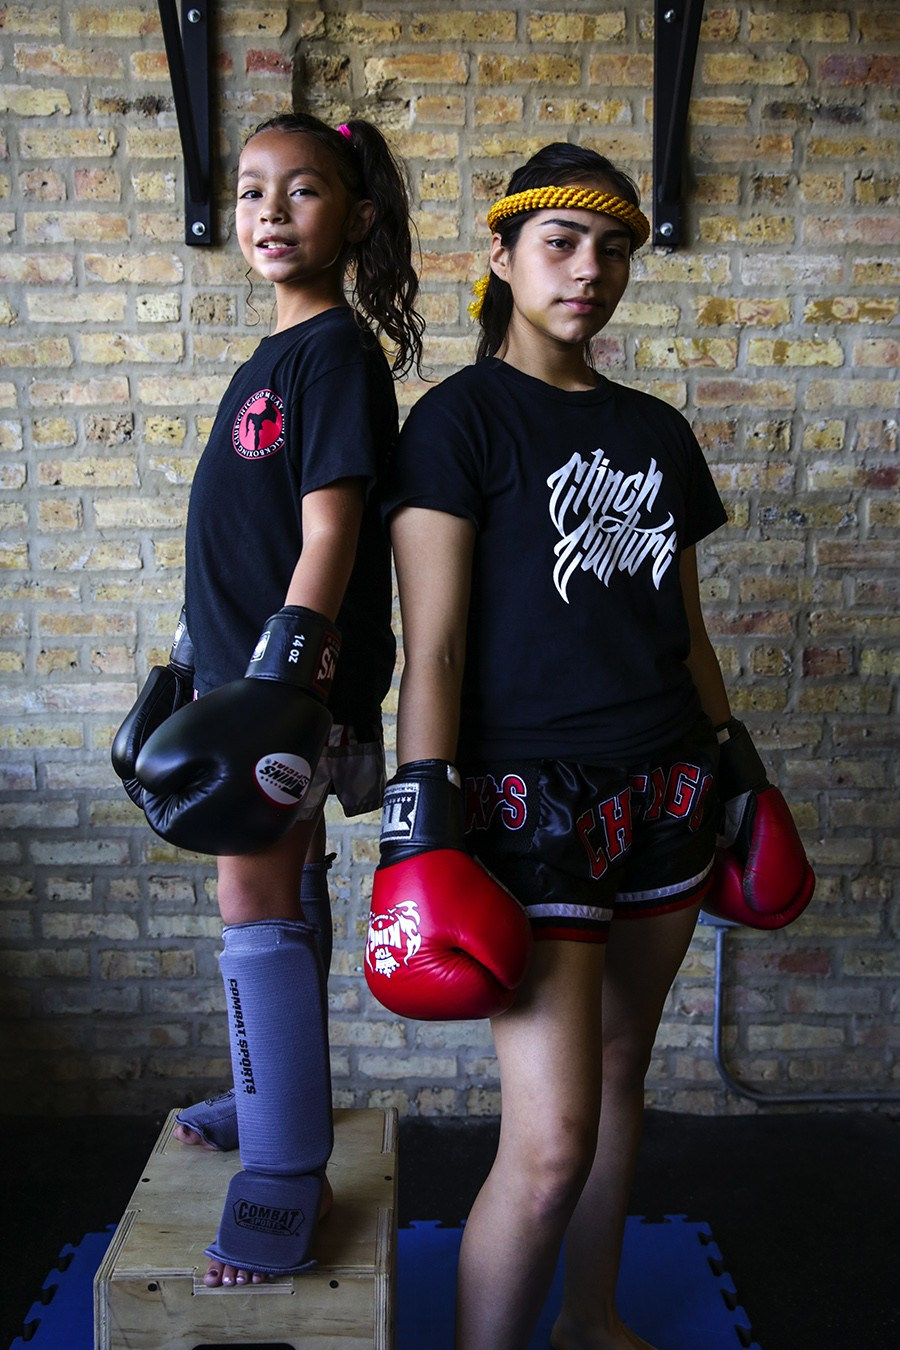 """Chanelle Ortiz, nine, and Paulina Lopez, 15, Portage Park Muay Thai  - Chanelle—""""I like Muay Thai because the punches and kicks are fun. I first started with boxing, but I was getting bored of boxing, so my dad took me here to learn some kicks. I think the kids at school should try Muay Thai because it's fun, and my coaches are really nice."""" - Paulina—""""It really means a lot to coach someone like Chanelle. She started at a younger age than me, and I'm sure she can go so much further. And she's so good now, too! It's fun to have someone who looks up to me and that does [Muay Thai] with me. It's like a team, me and her, our team against this guys' world."""" - GEOFF STELLFOX"""